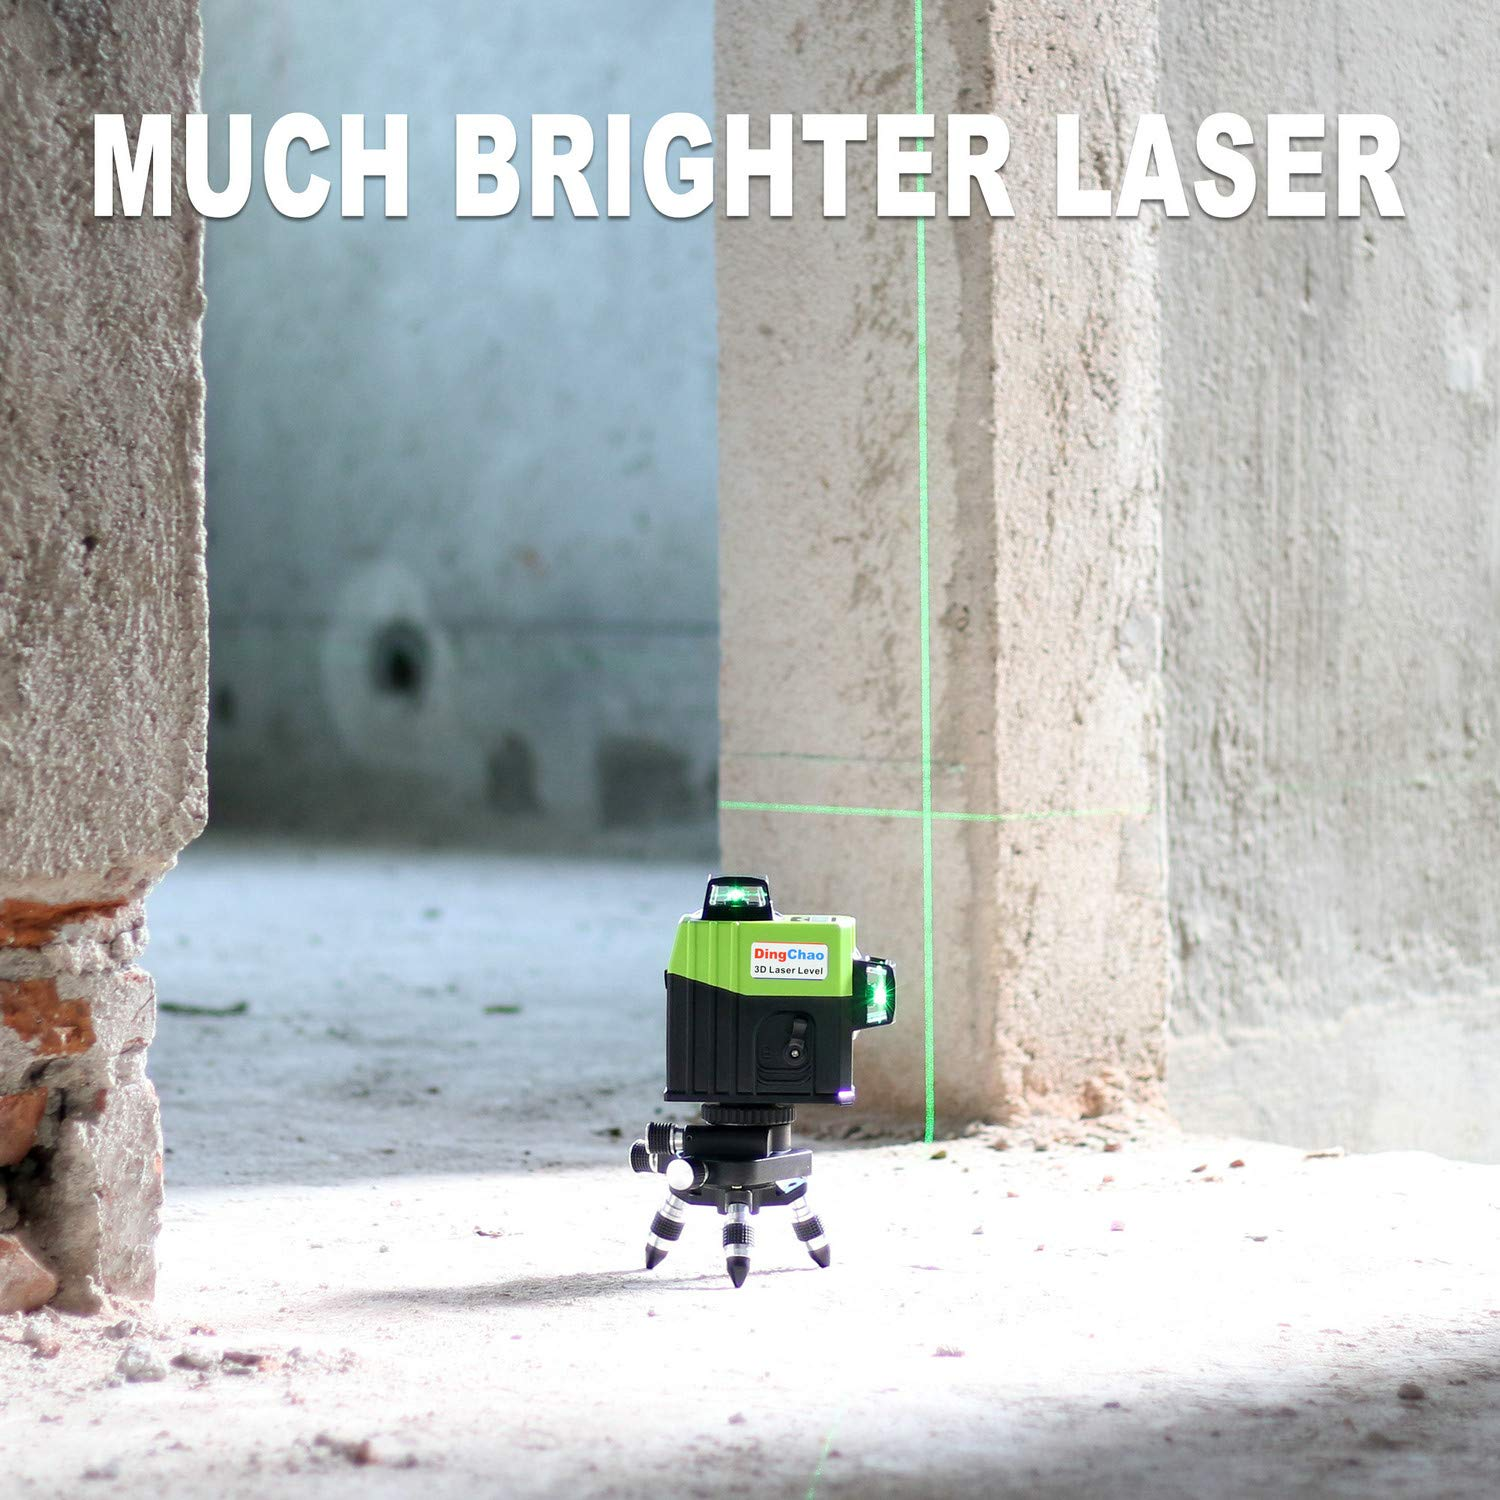 Dingchao Self-Leveling Three-Plane 3 x 360 Green Line Laser Level,with Micro-Adjust / 360 Degree Pivoting Base, Hard Carrying Case,Power Plug Adapter,Multi-functional Laser Leveler Layout Laser Tools by DINGCHAO (Image #3)